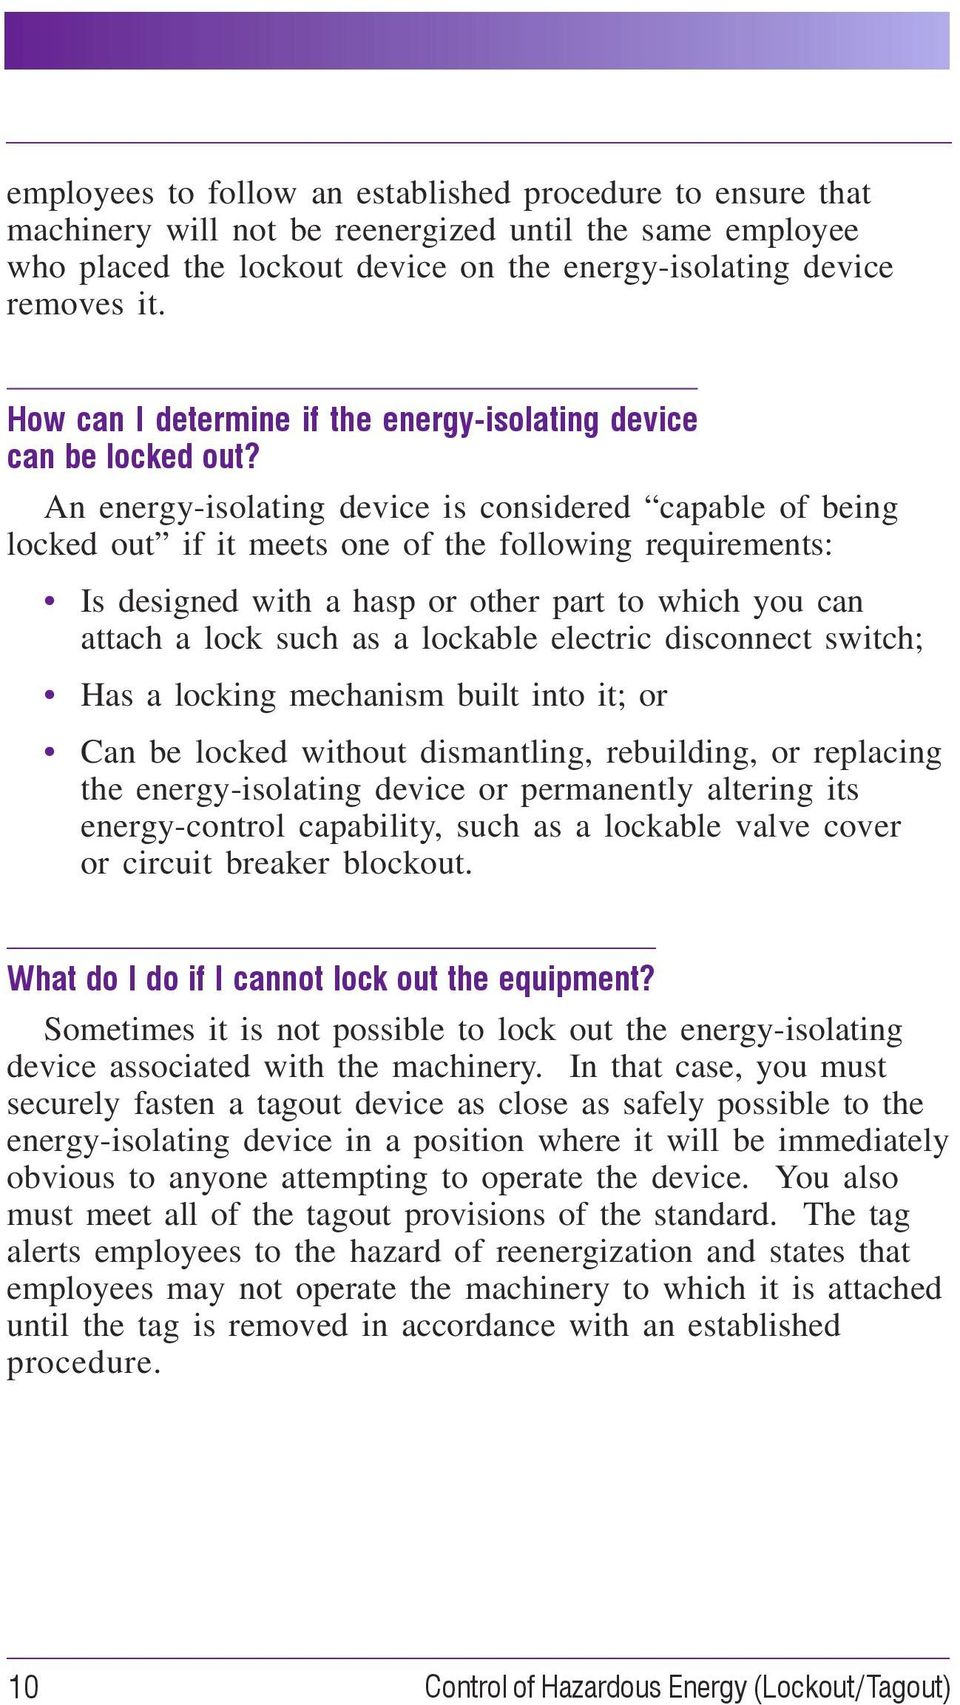 An energy-isolating device is considered capable of being locked out if it meets one of the following requirements: Is designed with a hasp or other part to which you can attach a lock such as a